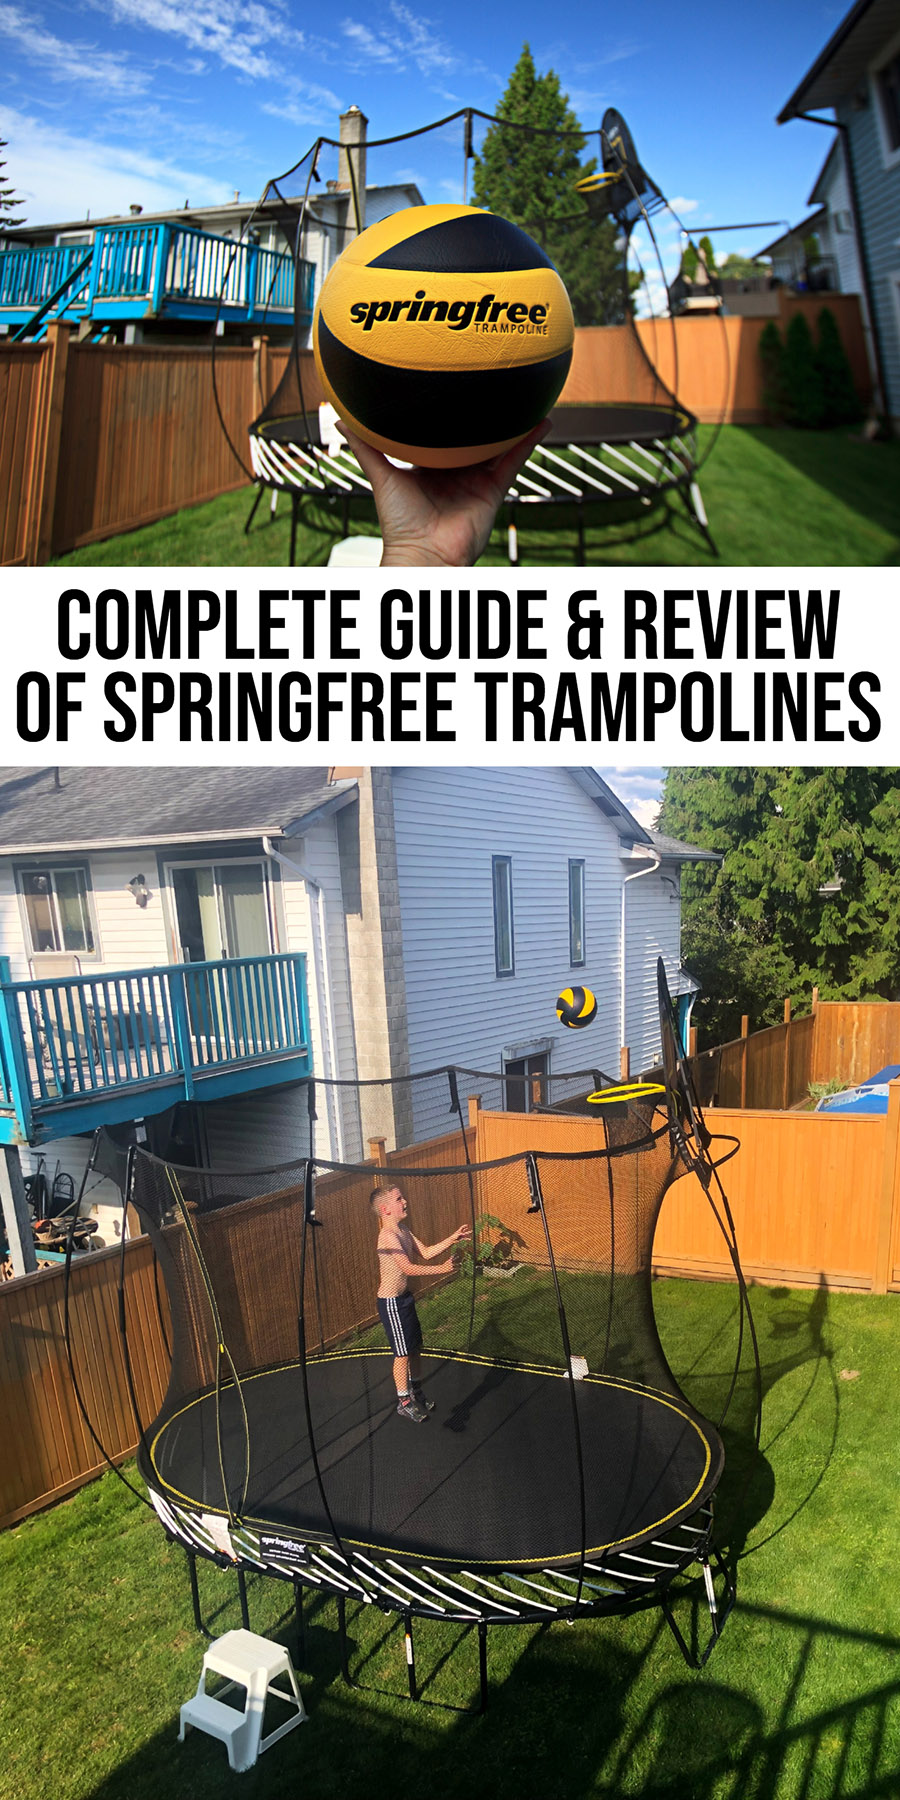 Springless Trampoline Review of Spring free